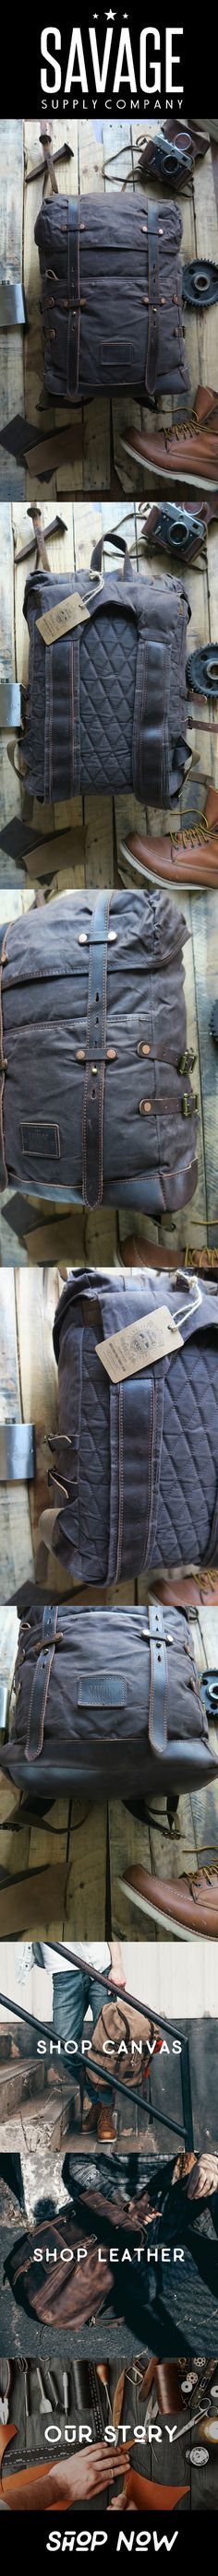 Waxed canvas adventure hiking/camping backpack by Savage Supply Co.